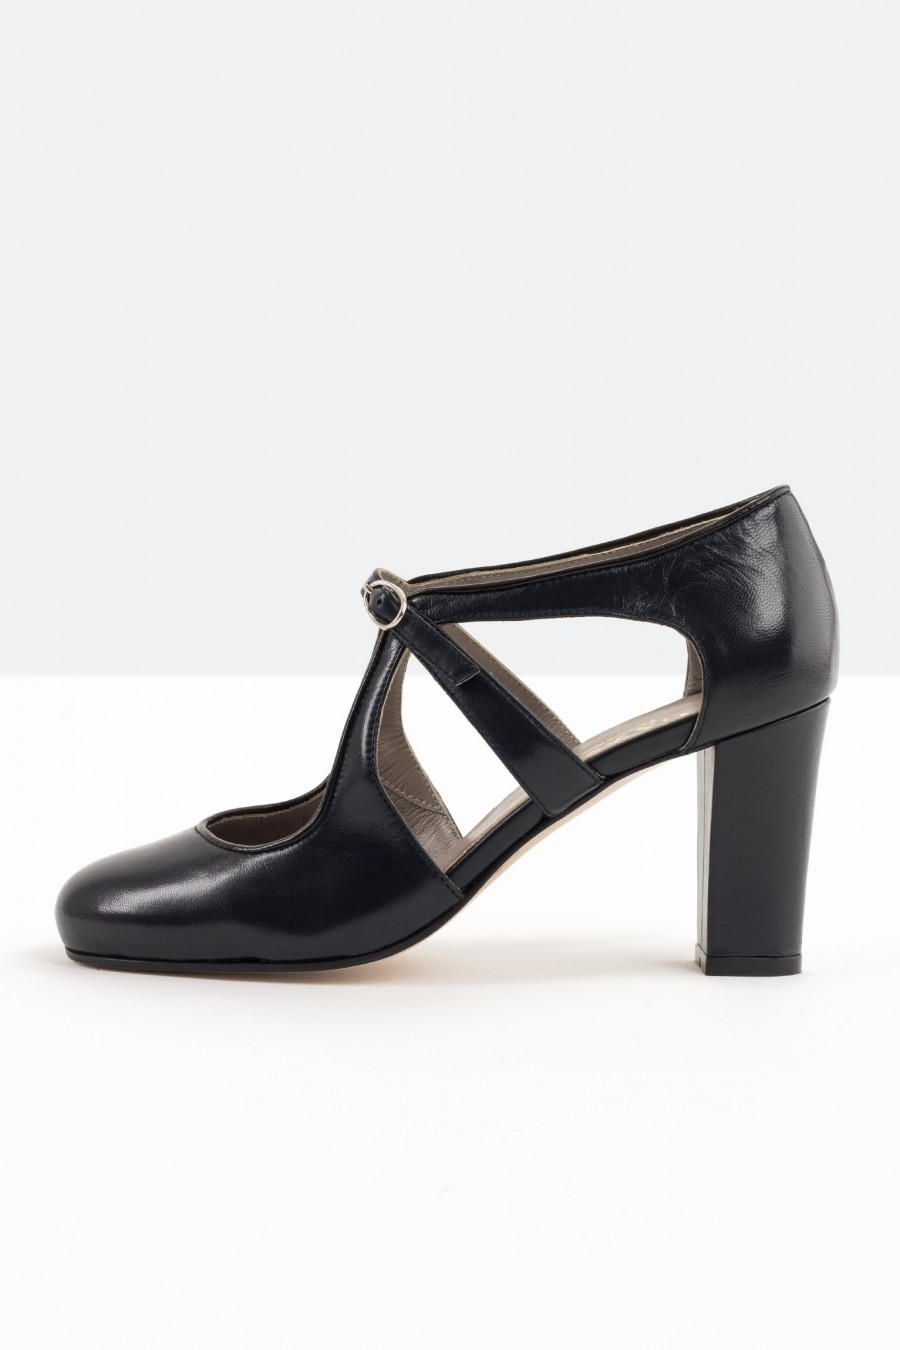 Tango shoes with side eyelets